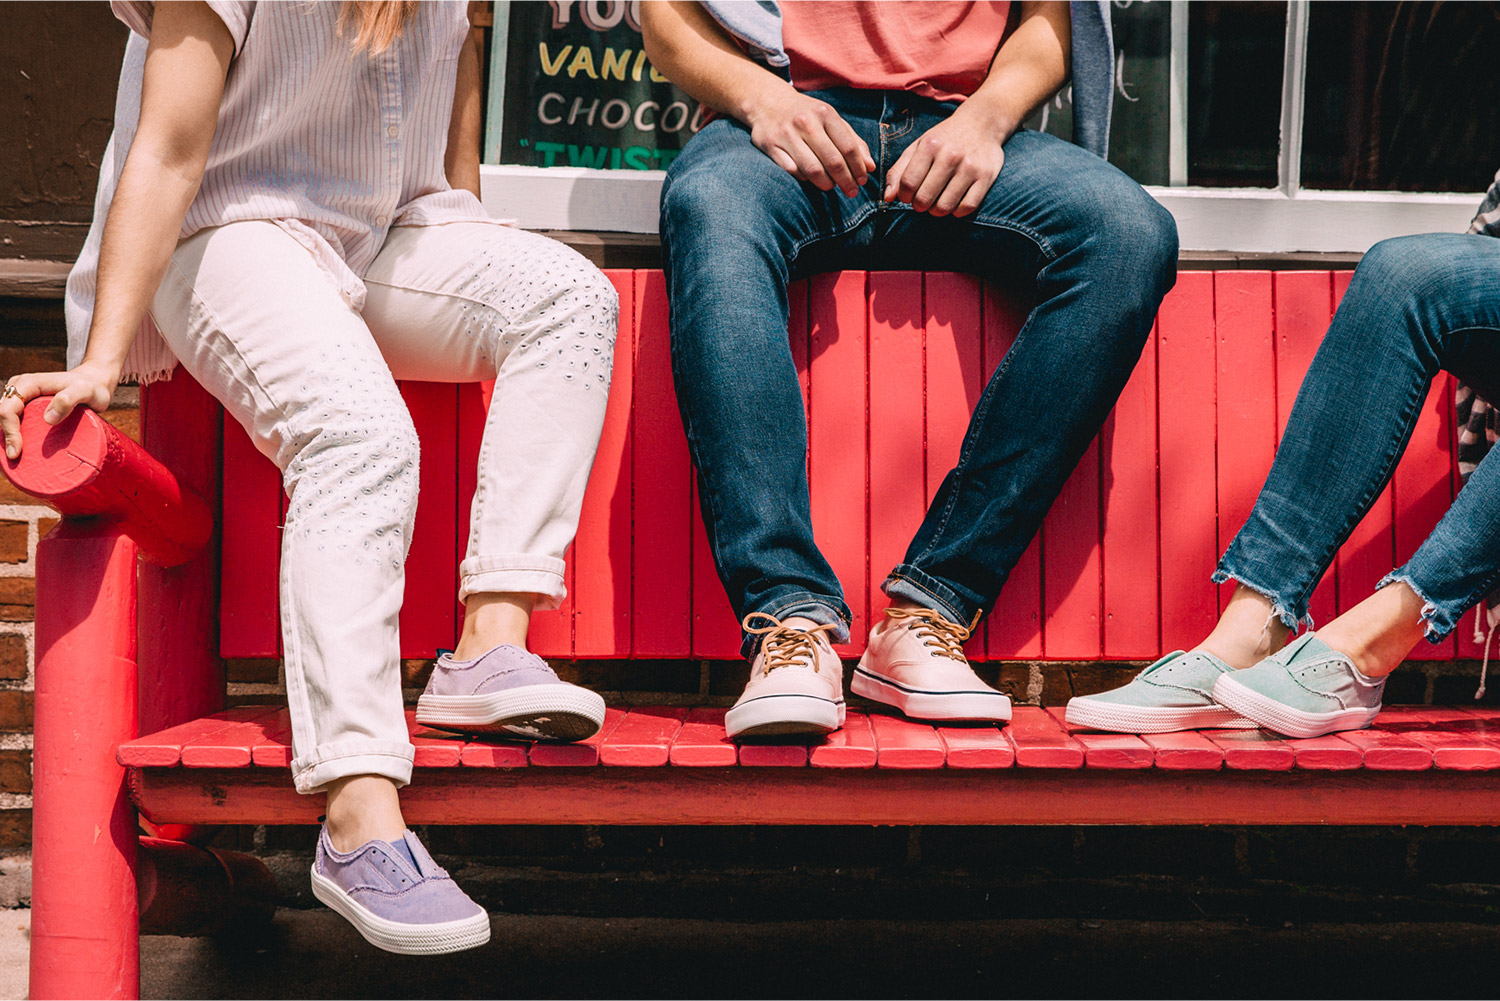 People sitting on the back of a bench with their feet on the seat, wearing Sperry casual sneakers.